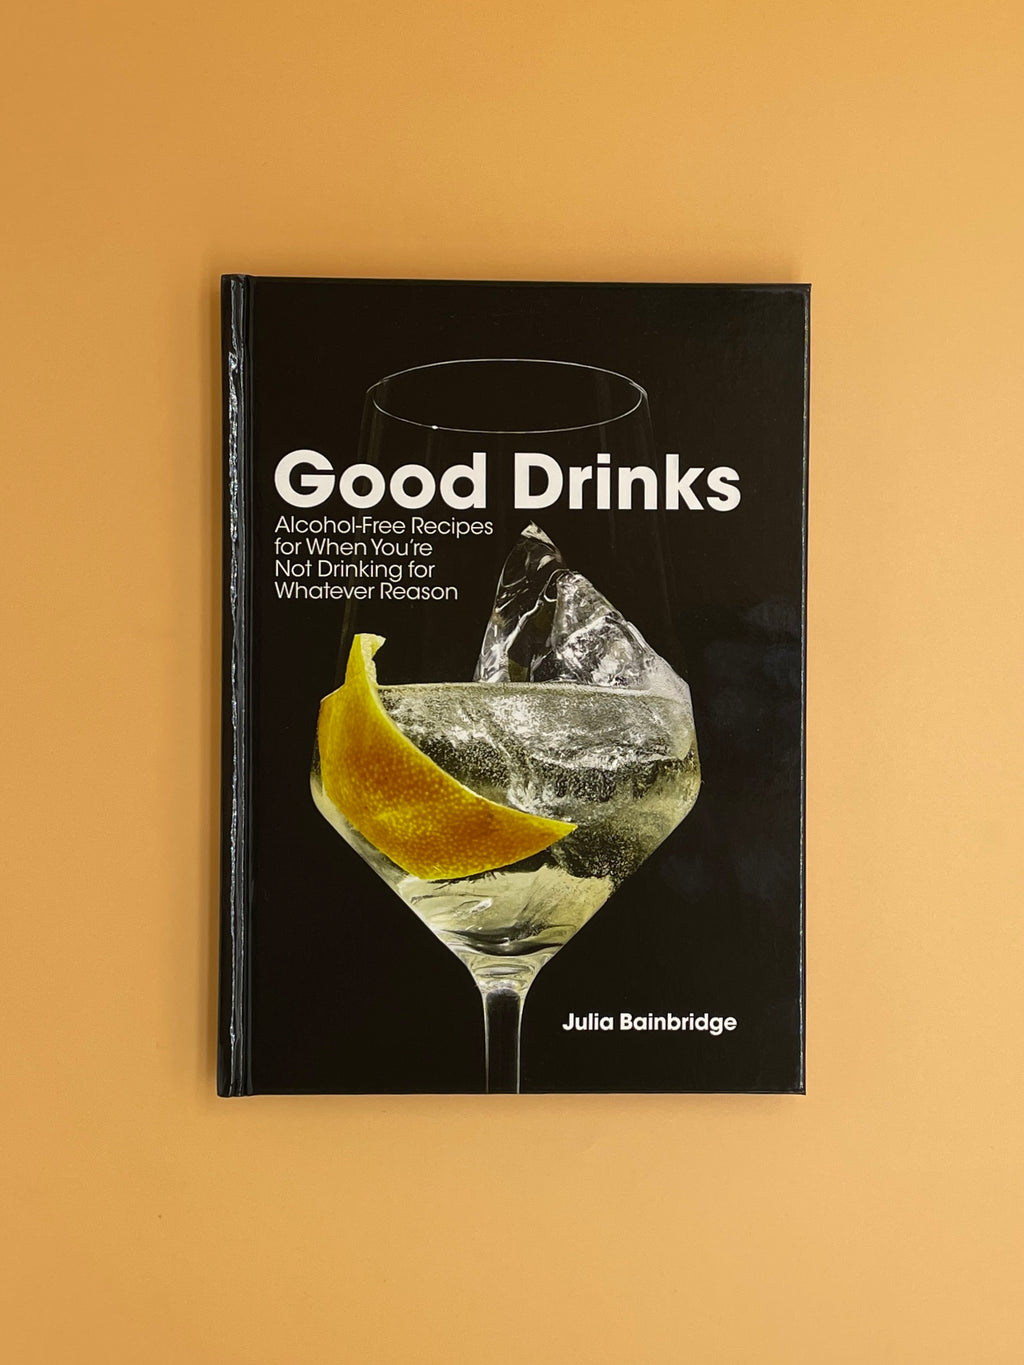 Good Drinks: Alcohol-Free Recipes for When You're Not Drinking for Whatever Reason (Julia Bainbridge)